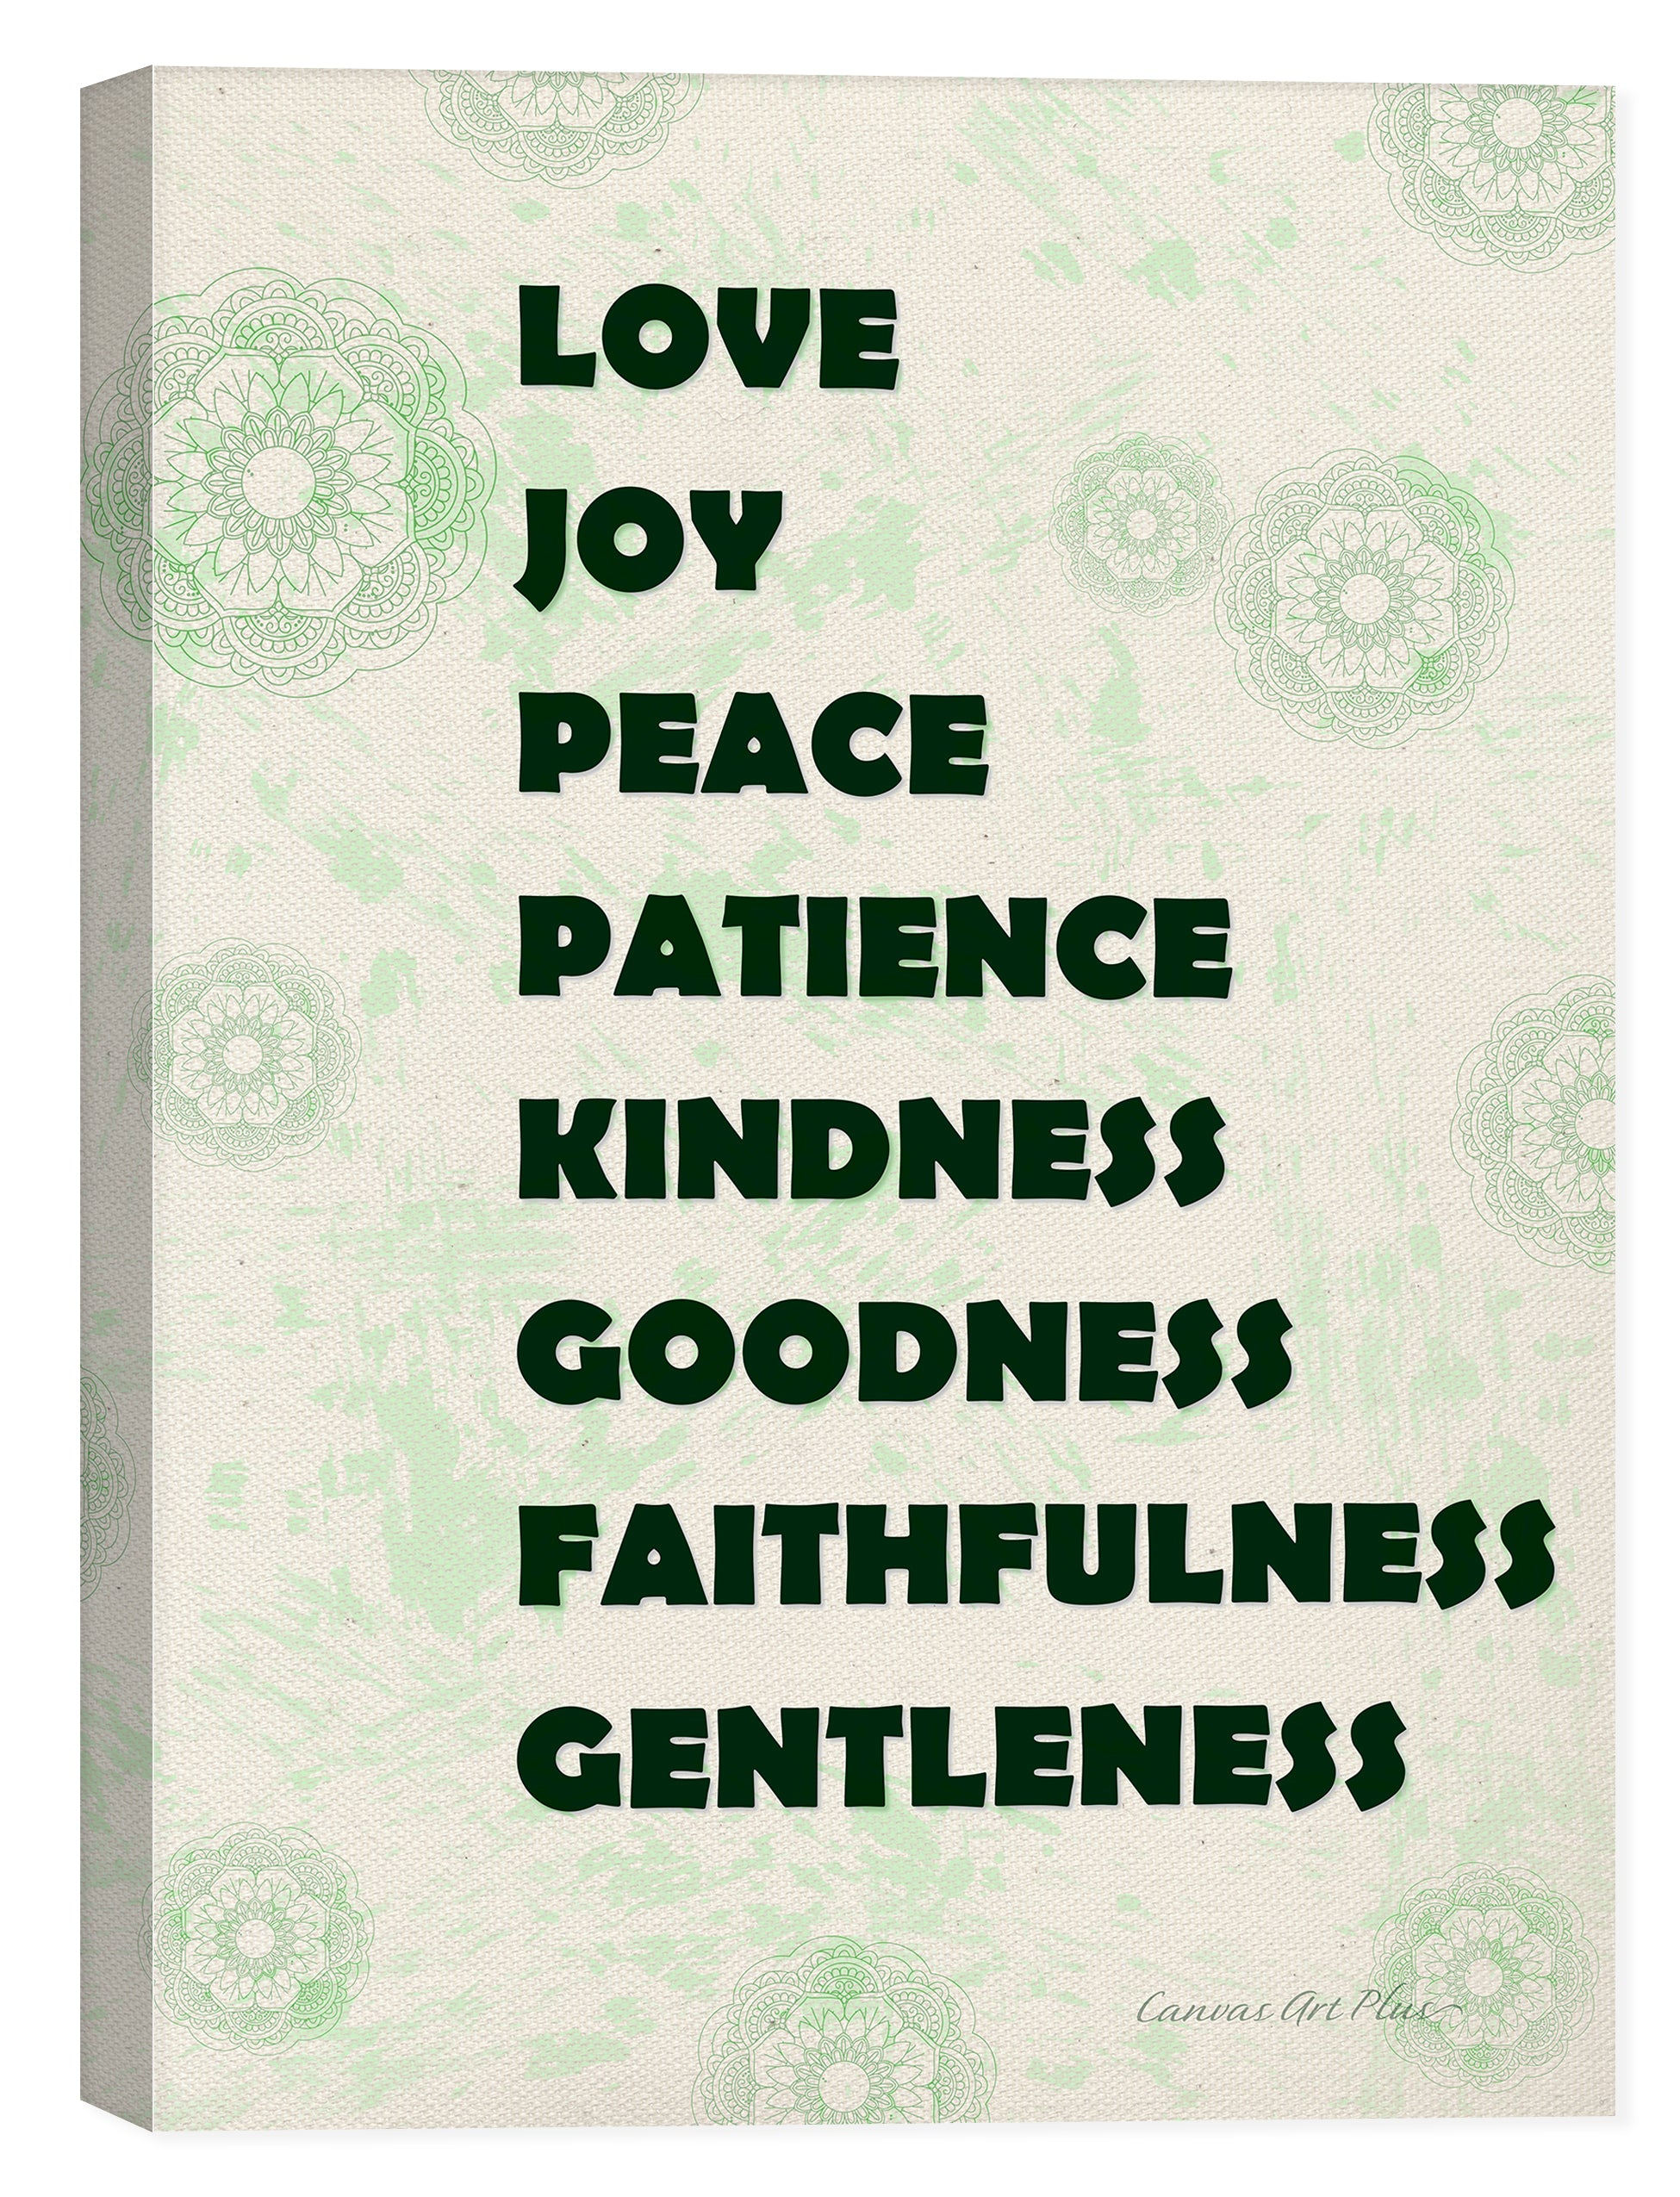 Love, Joy, Peace - Inspirational Art on Canvas